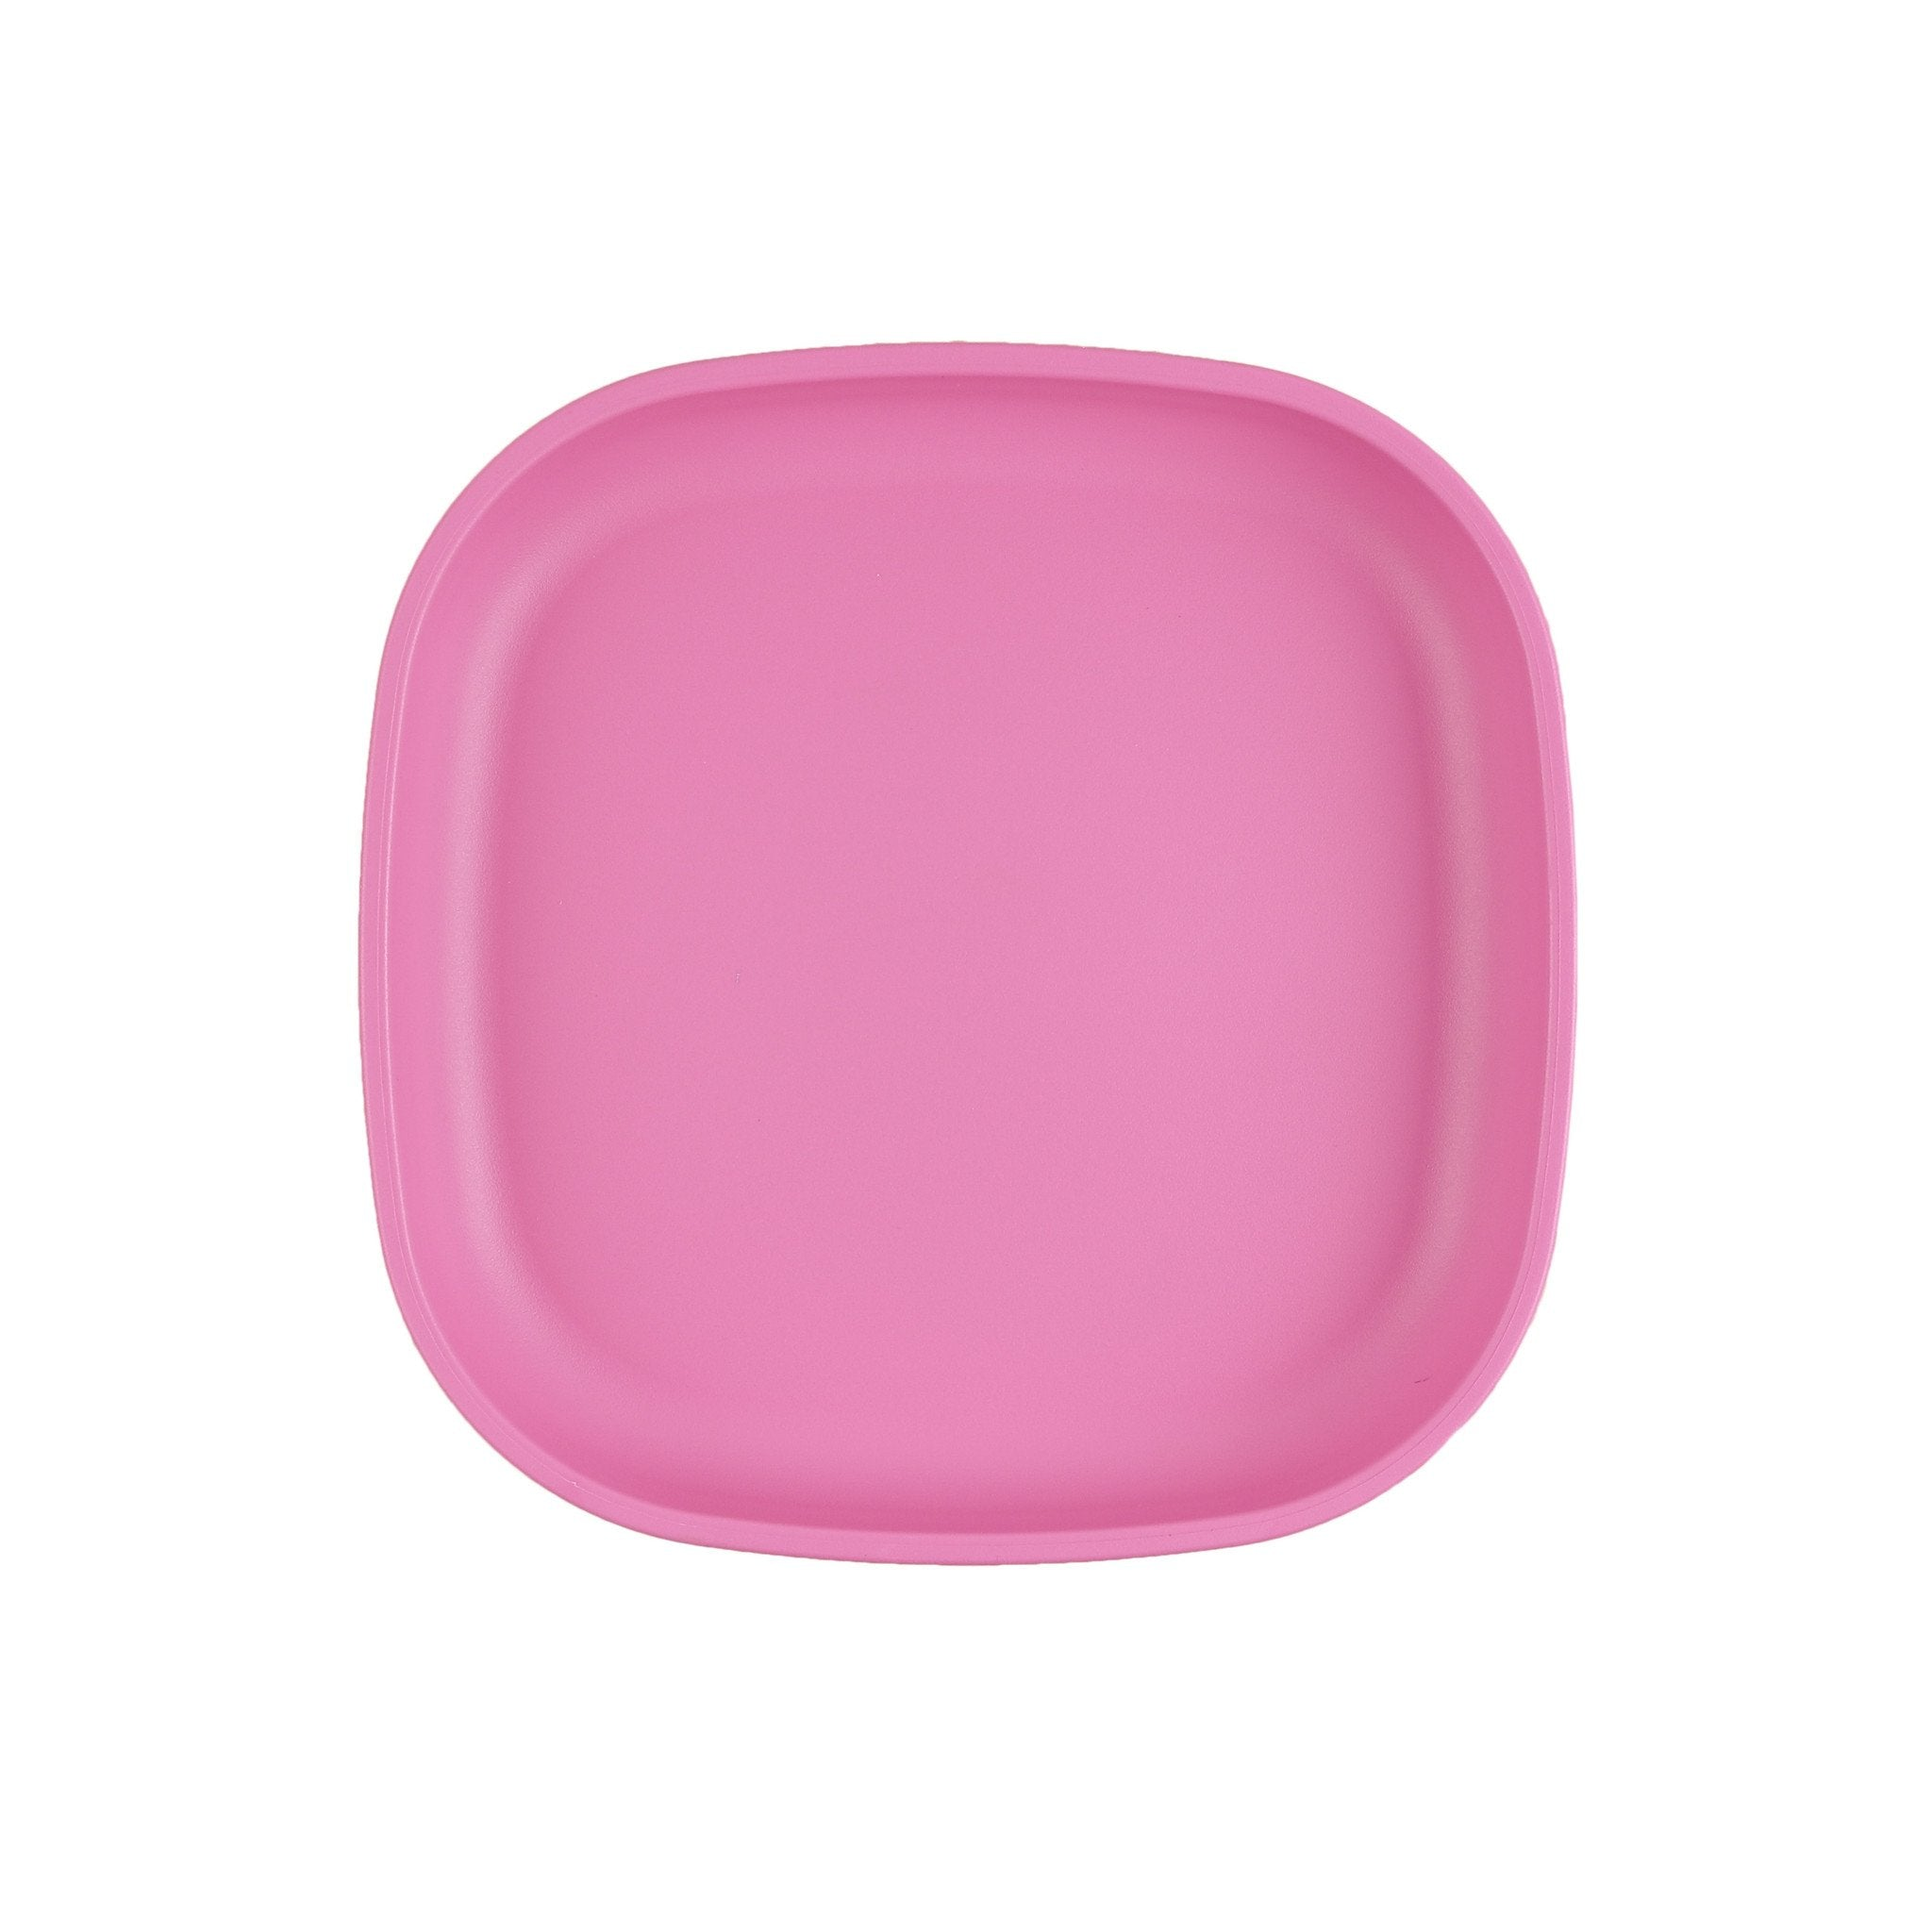 Replay Large Plate Replay Dinnerware Bright Pink at Little Earth Nest Eco Shop